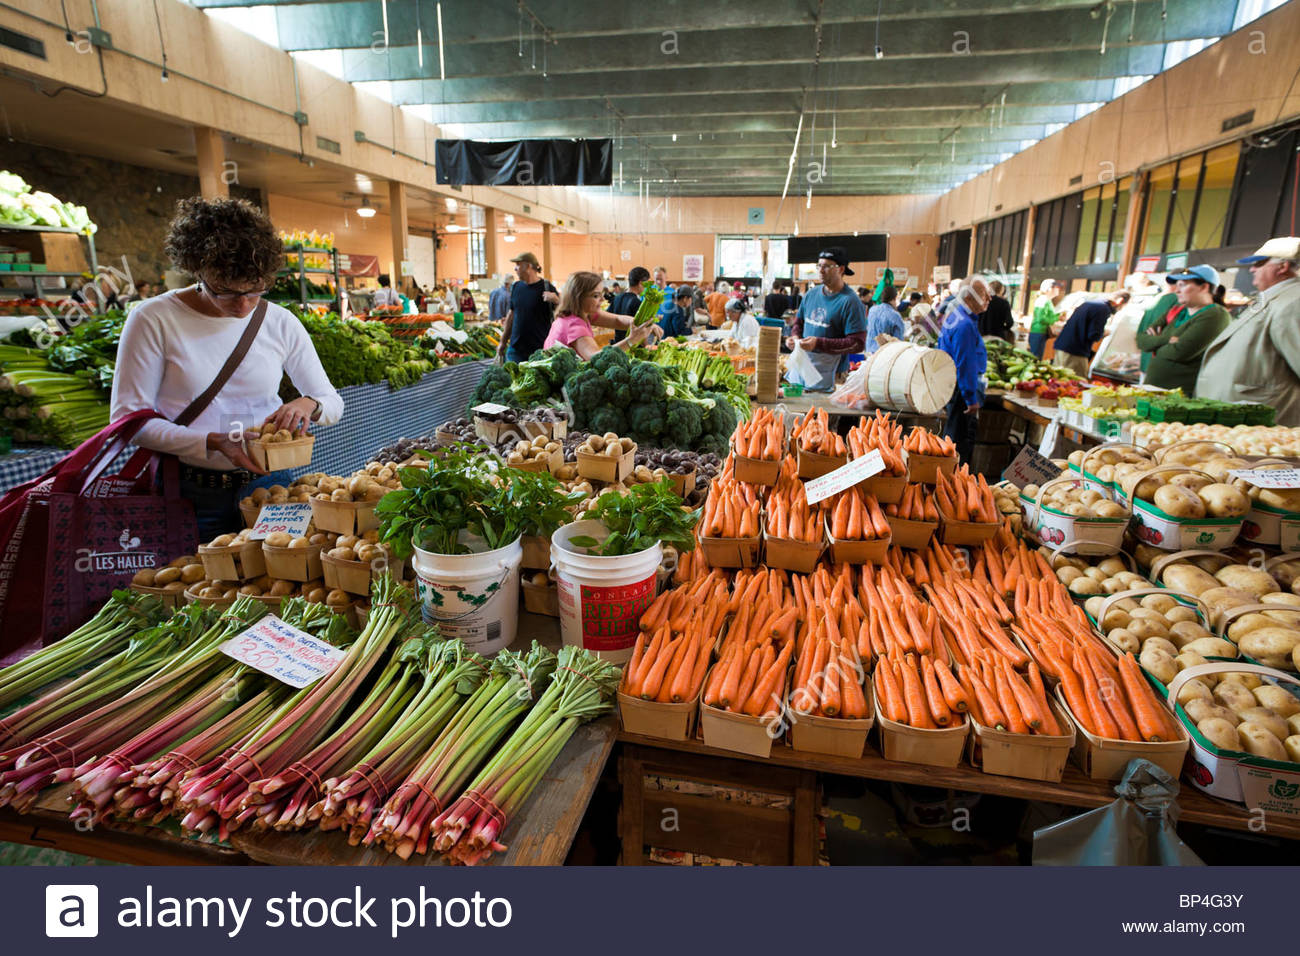 Farmers_market_in_the_Saint_Lawrence_Mar